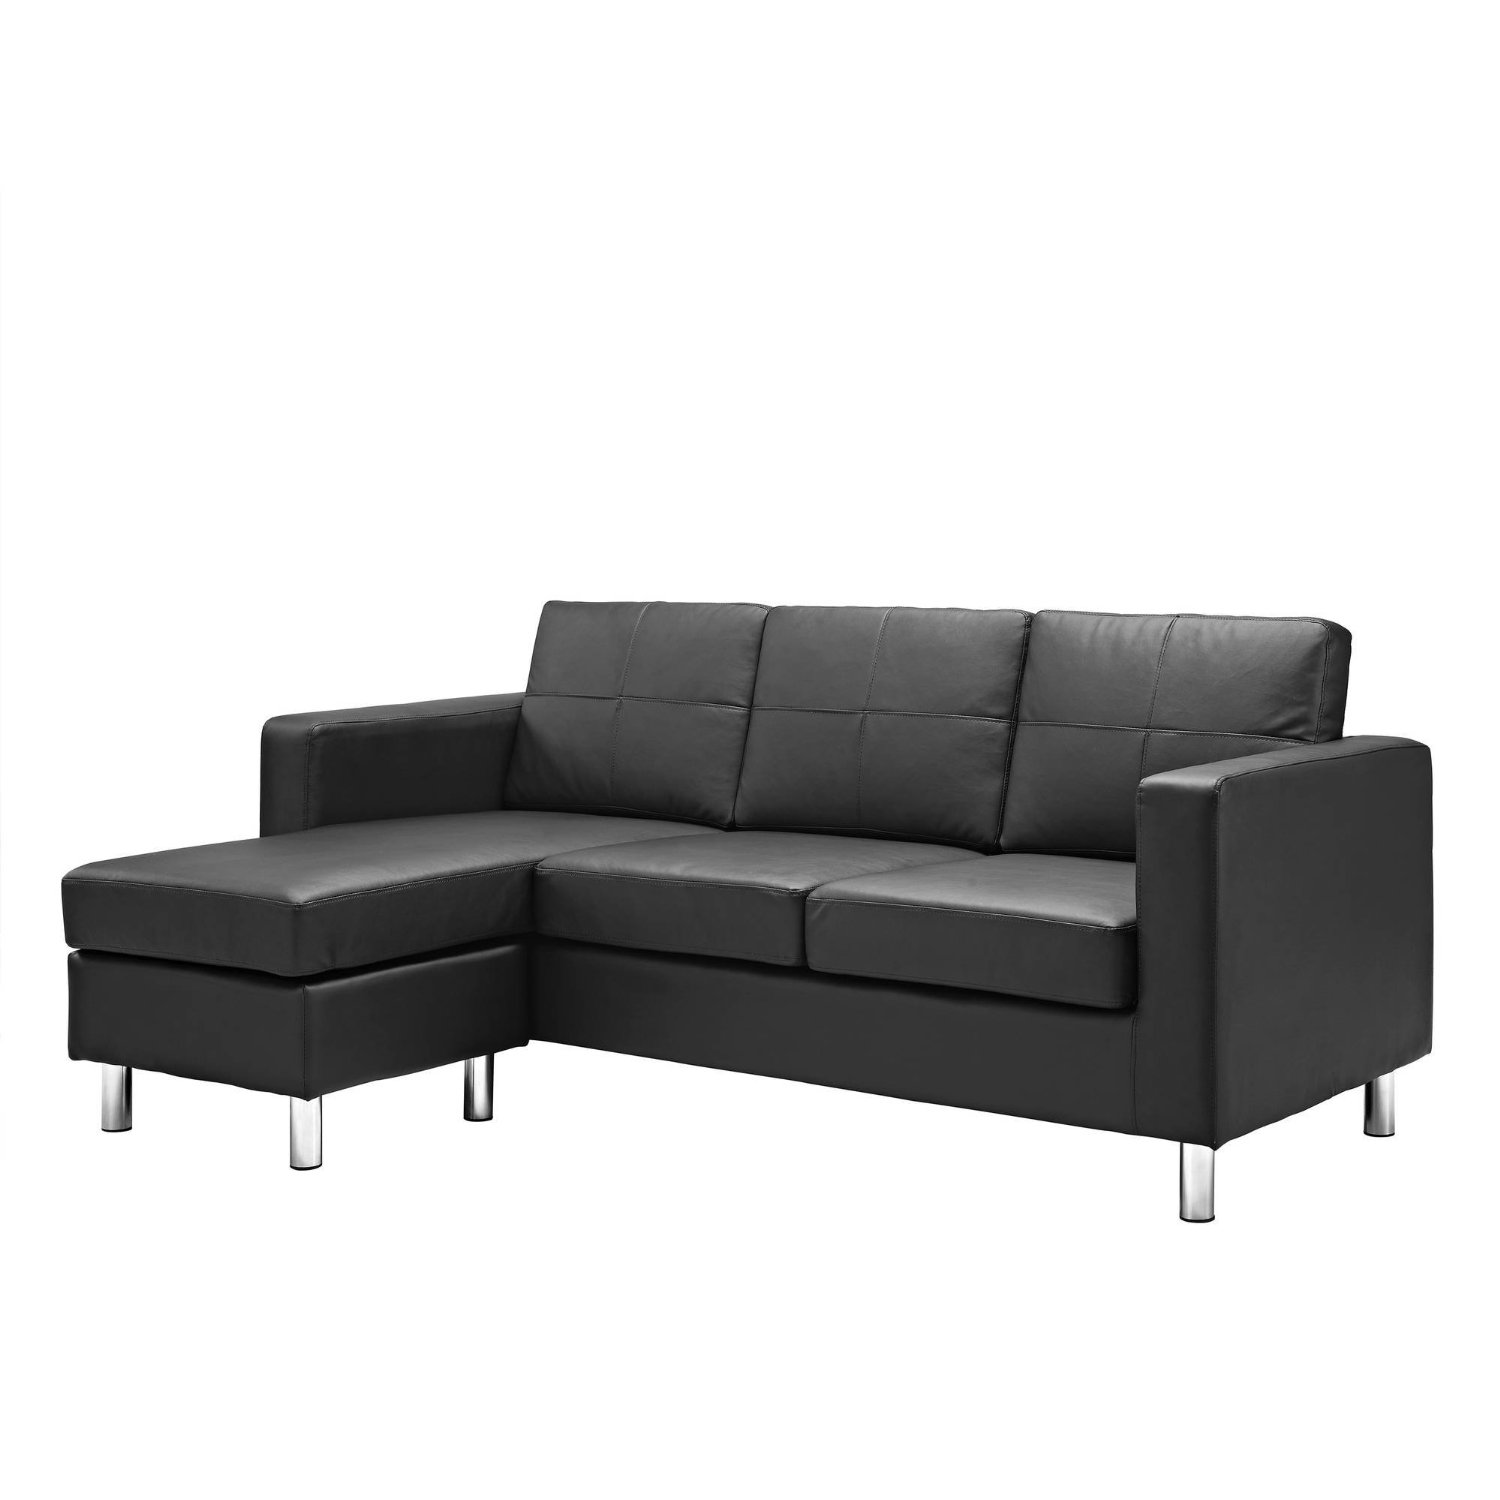 Modern Luxury Sofa Leather Sectional Couch Chaise Living Room Furniture Home Office Space